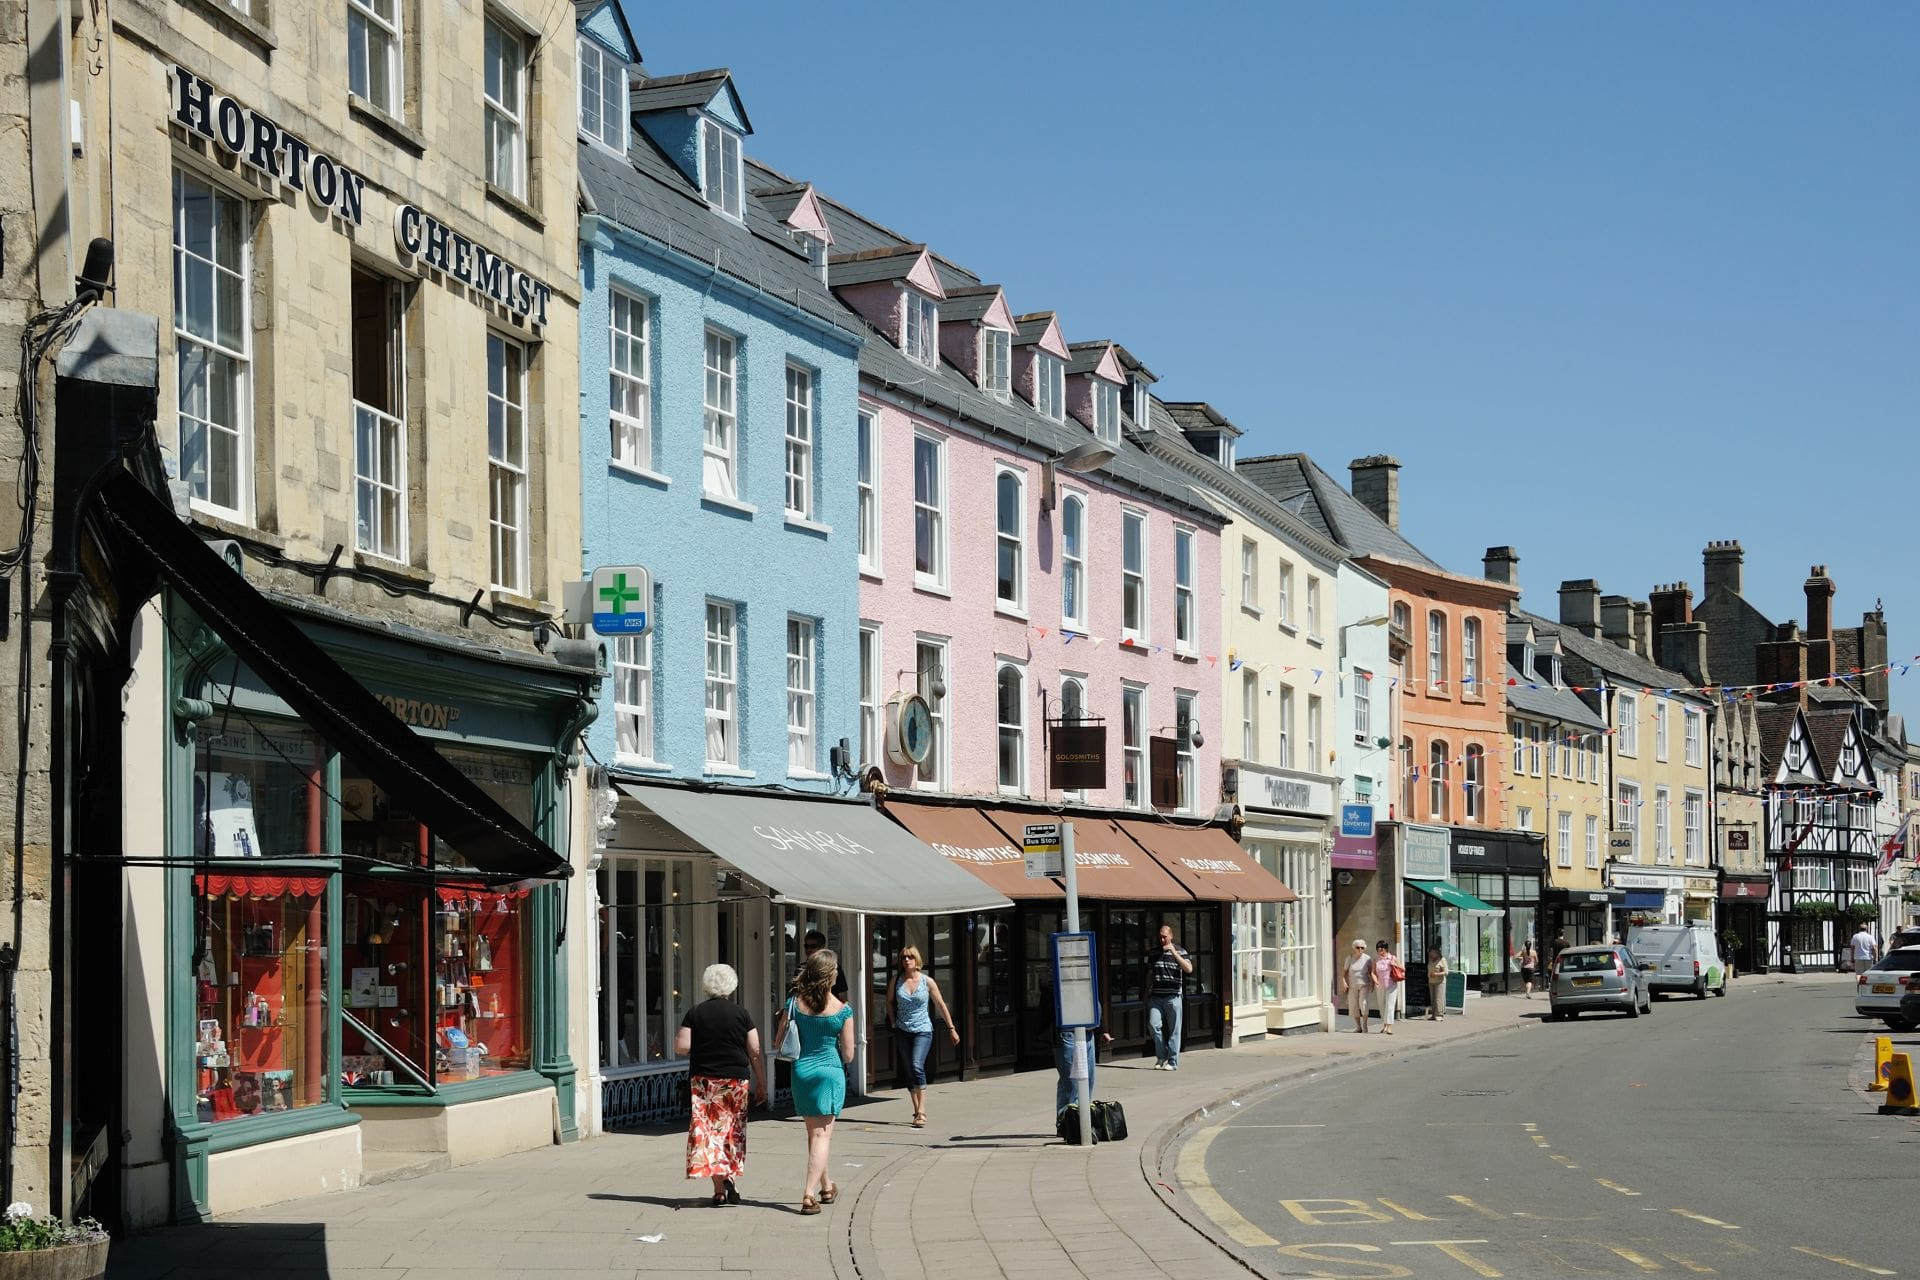 people-walking-down-british-high-street-with-colourful-shops-on-sunny-day-in-cirencester-gloucestershire